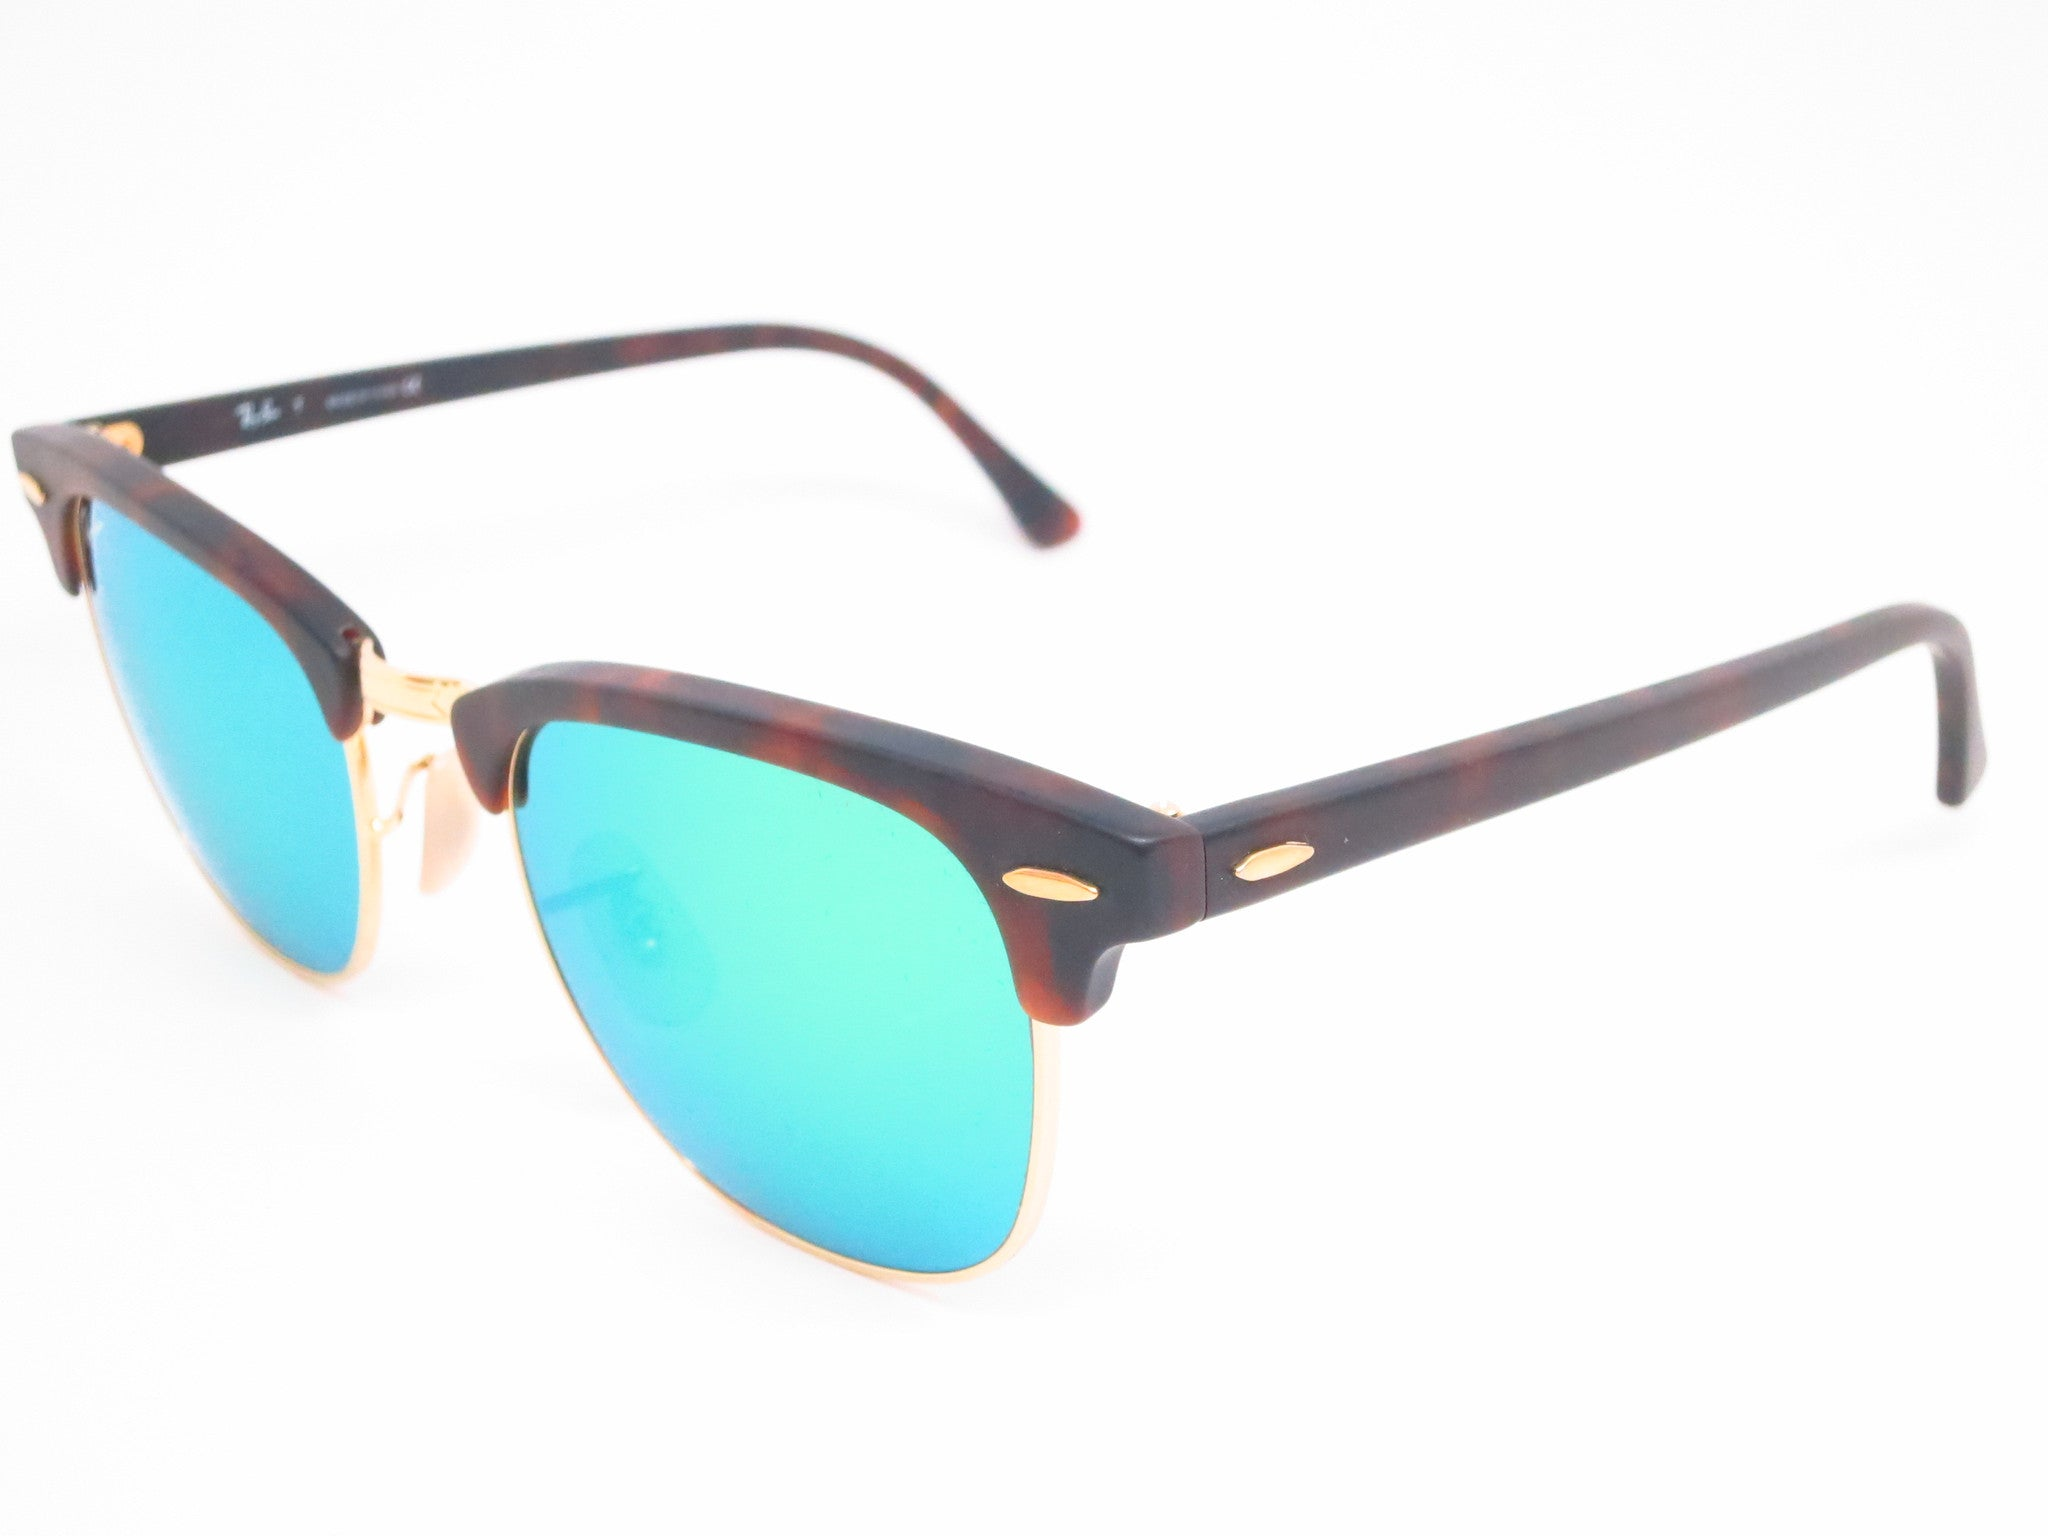 5ee7bd75f5 Ray-Ban RB 3016 Clubmaster 1145 19 Sand Havana   Gold Sunglasses - Eye ...